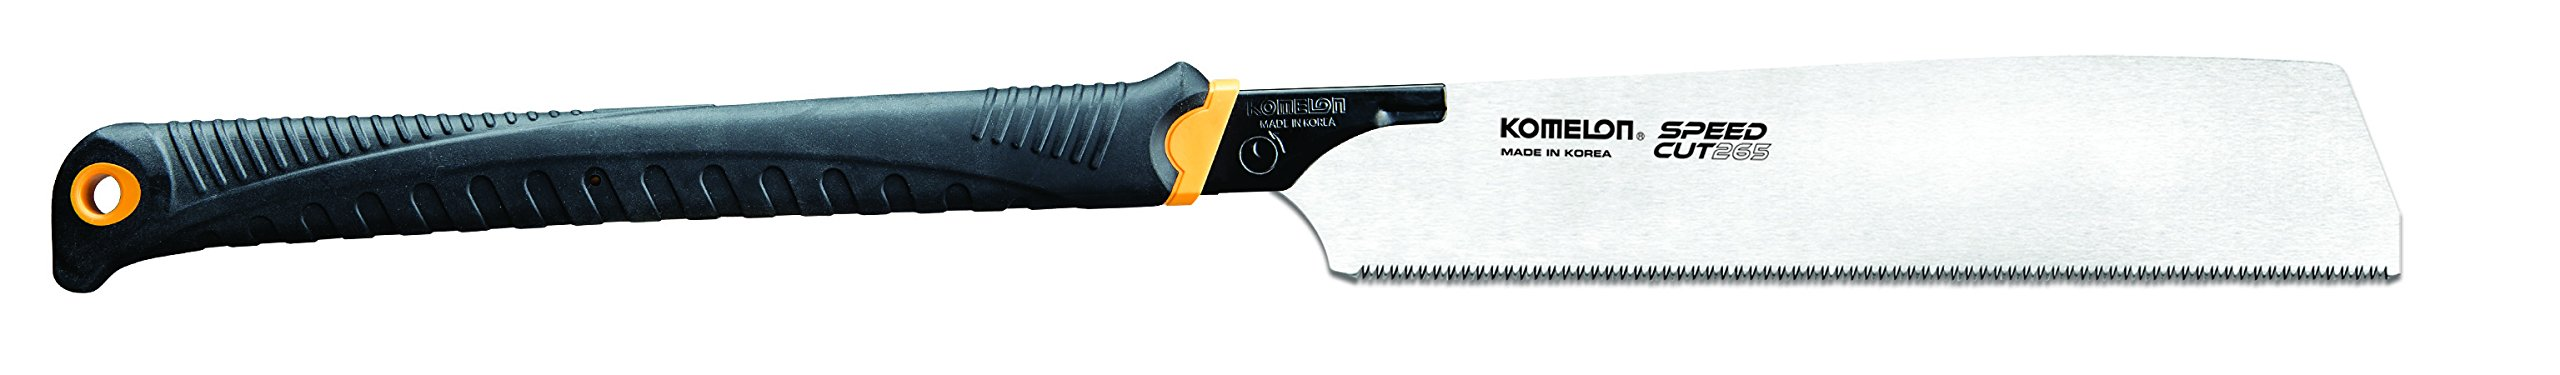 Komelon OS-265 Speed Cut Carpenter Saw, 10.5'', Black